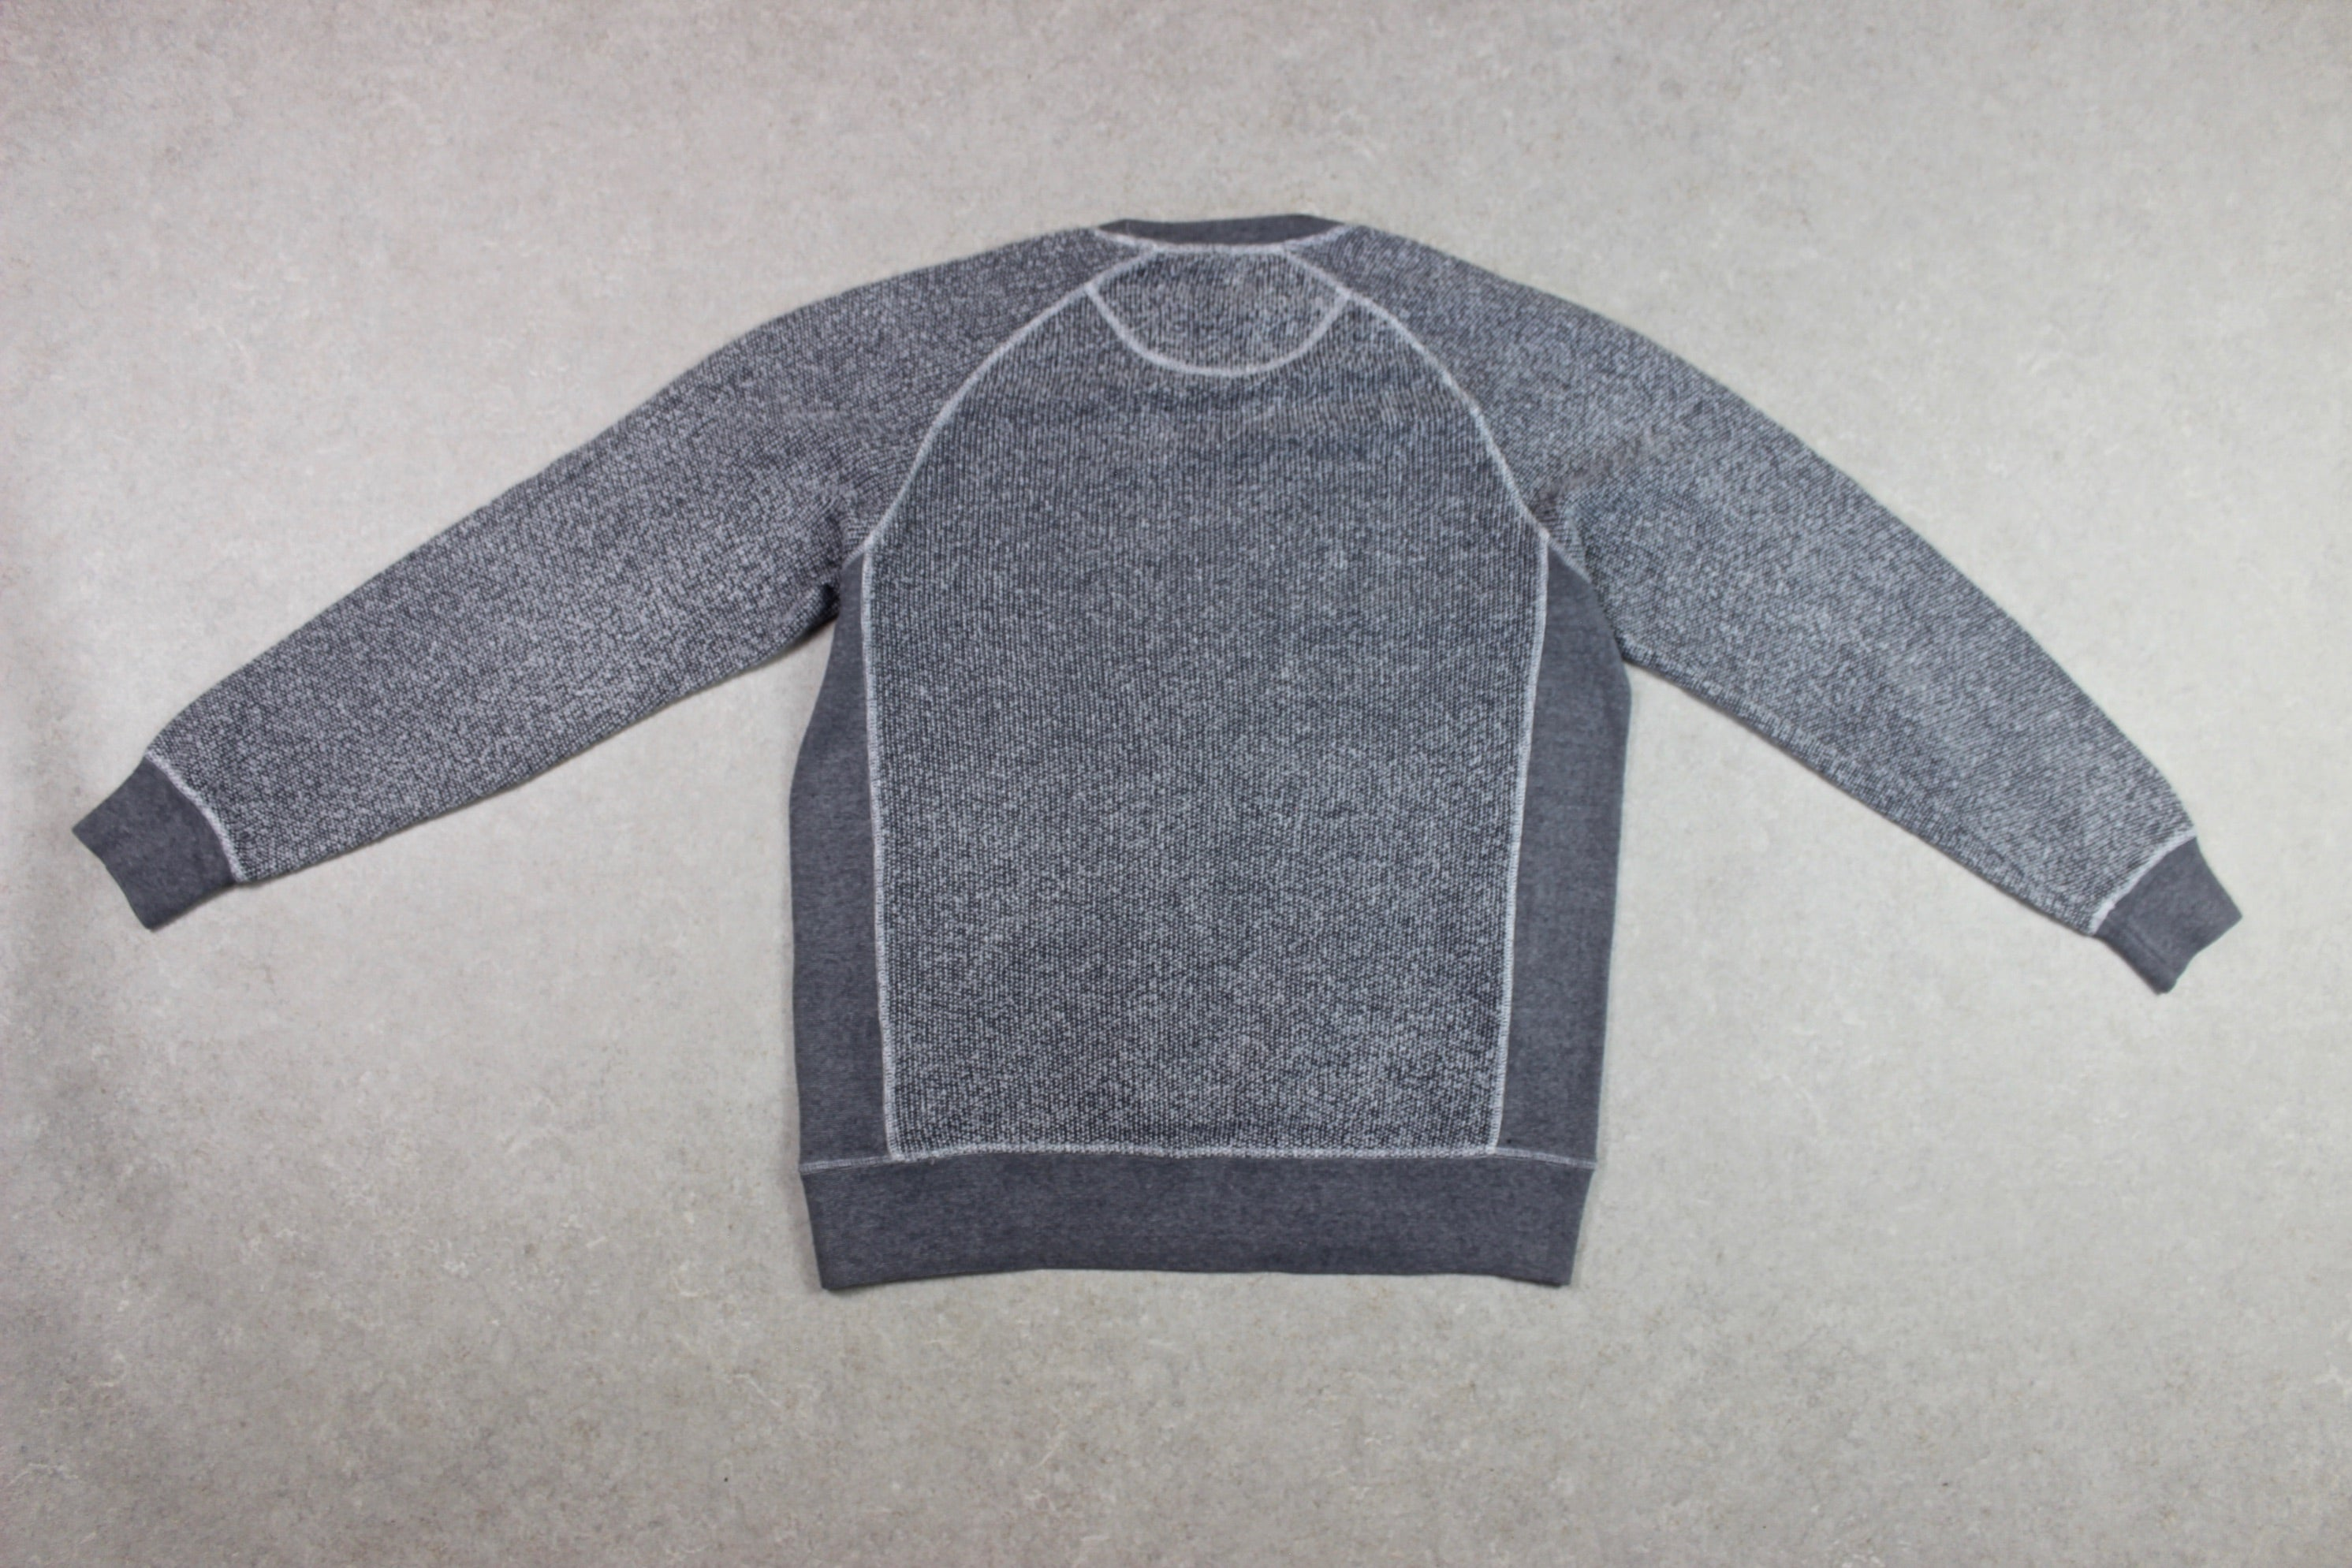 Norse Projects - Sweatshirt Jumper - Navy Blue - Small